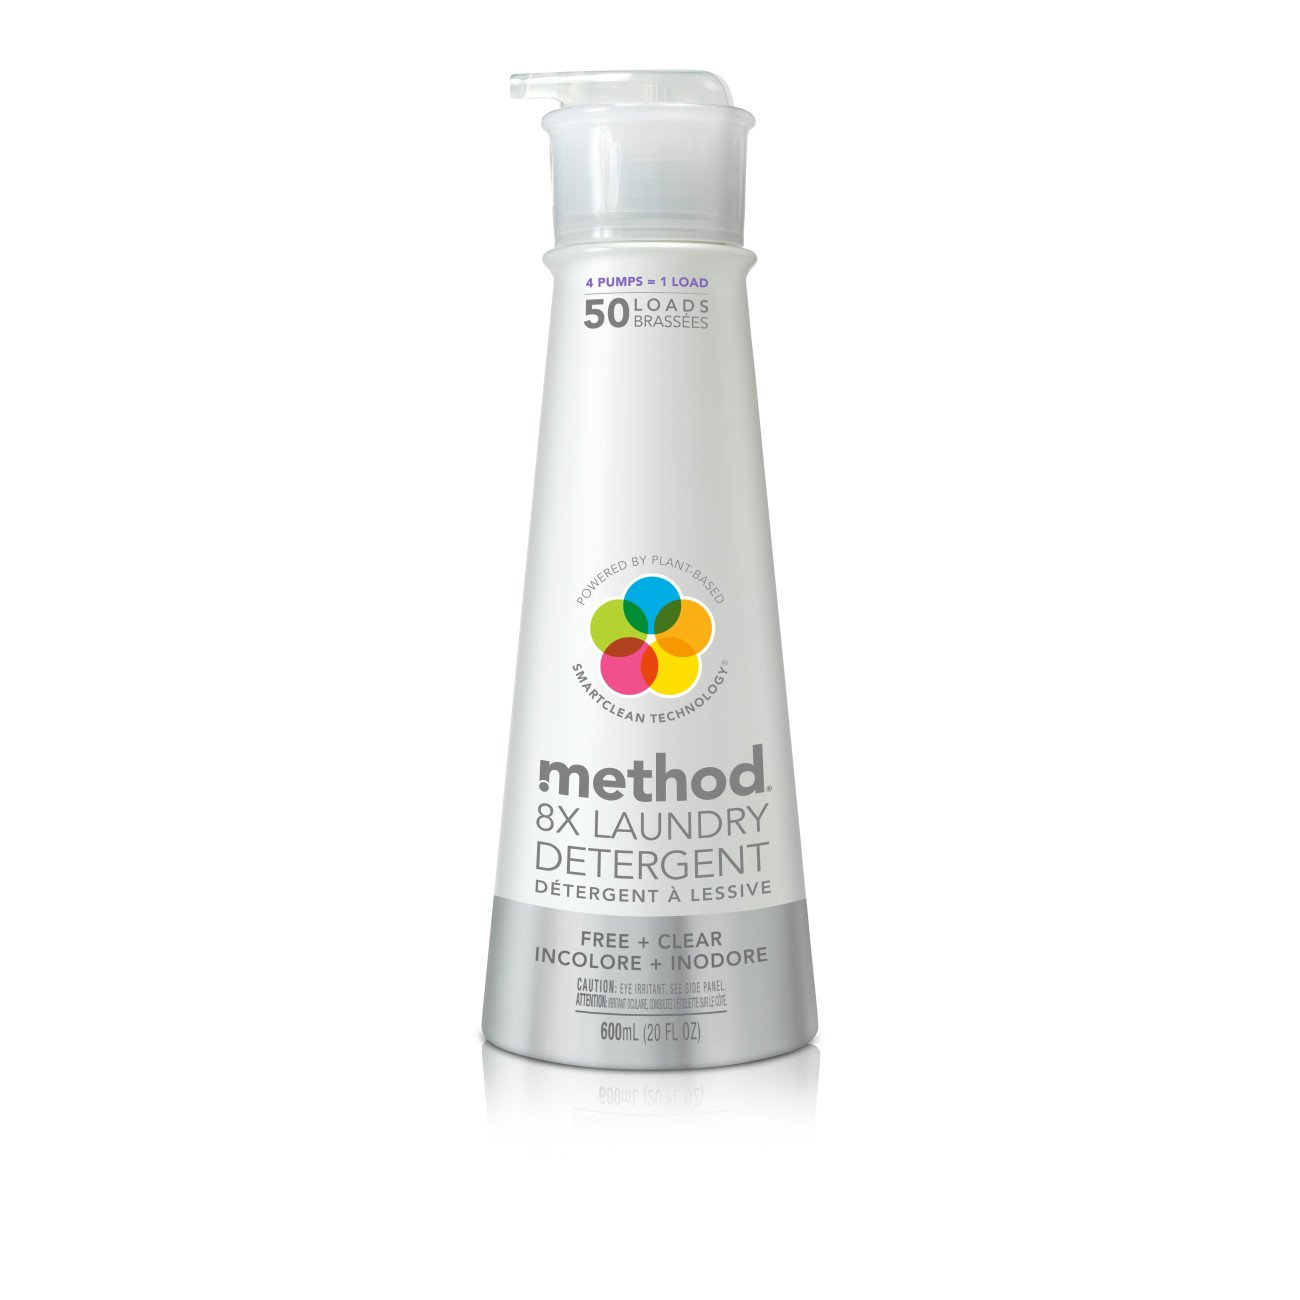 Method Laundry Detergent with Pump, Free + Clear, 20 Ounce, 50 Loads product